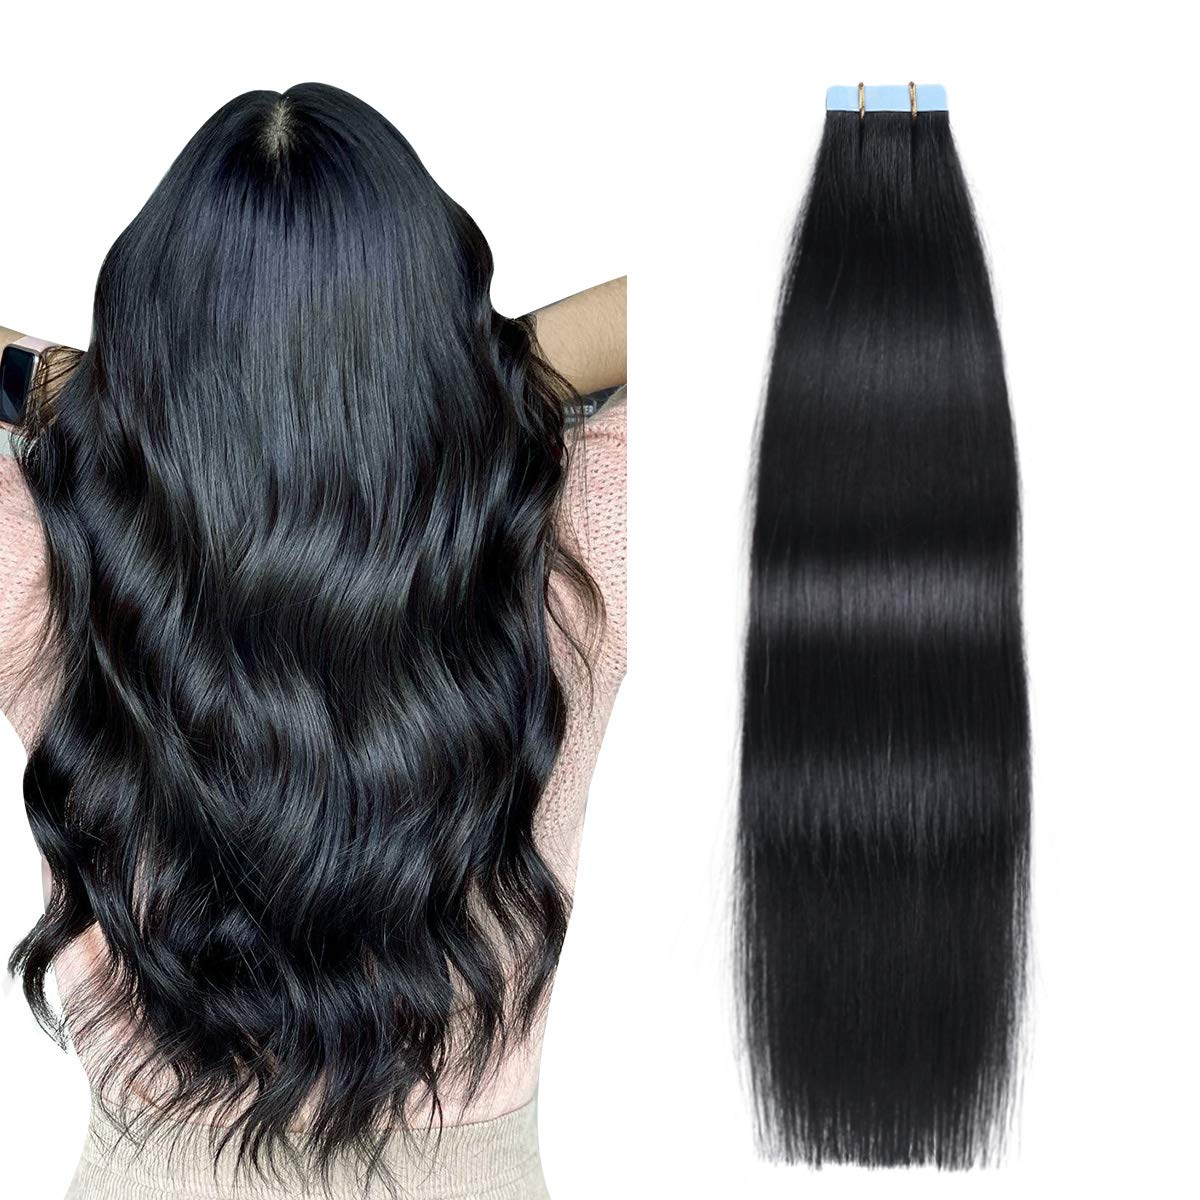 Buy Hair Extensions Online for immediate length and hair volume